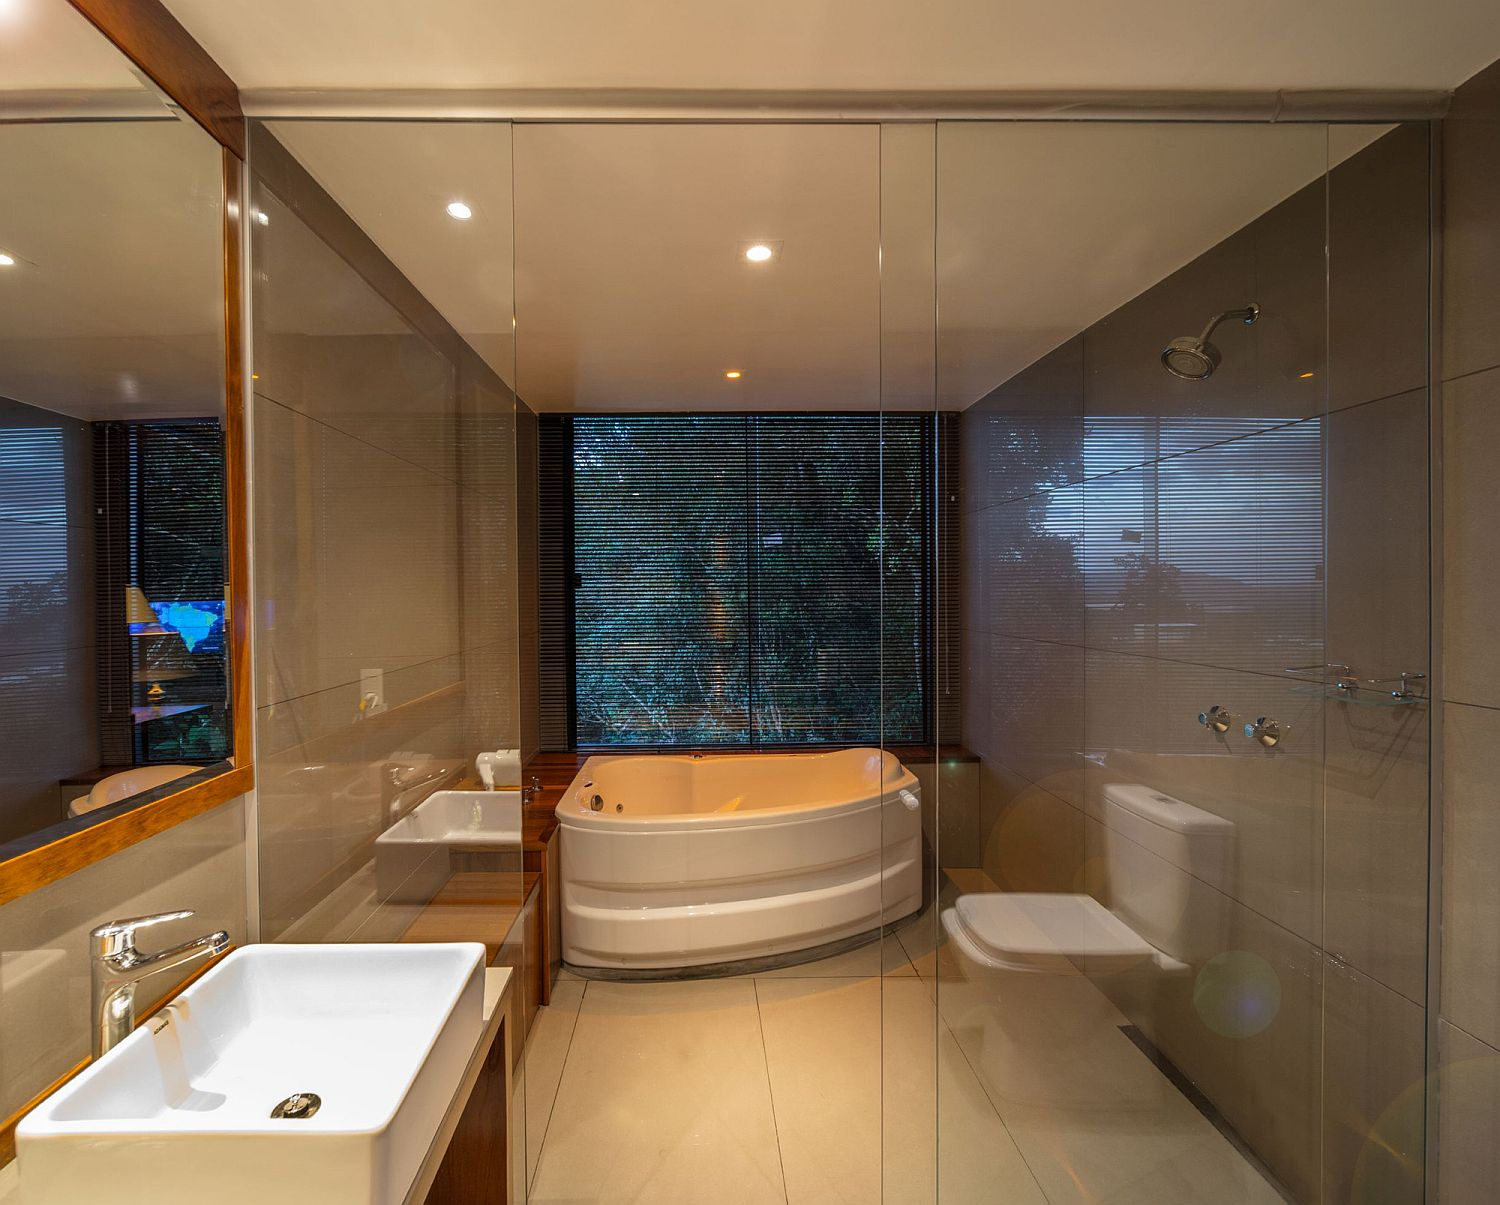 Small bathroom of the cabin with bathtub and shower area